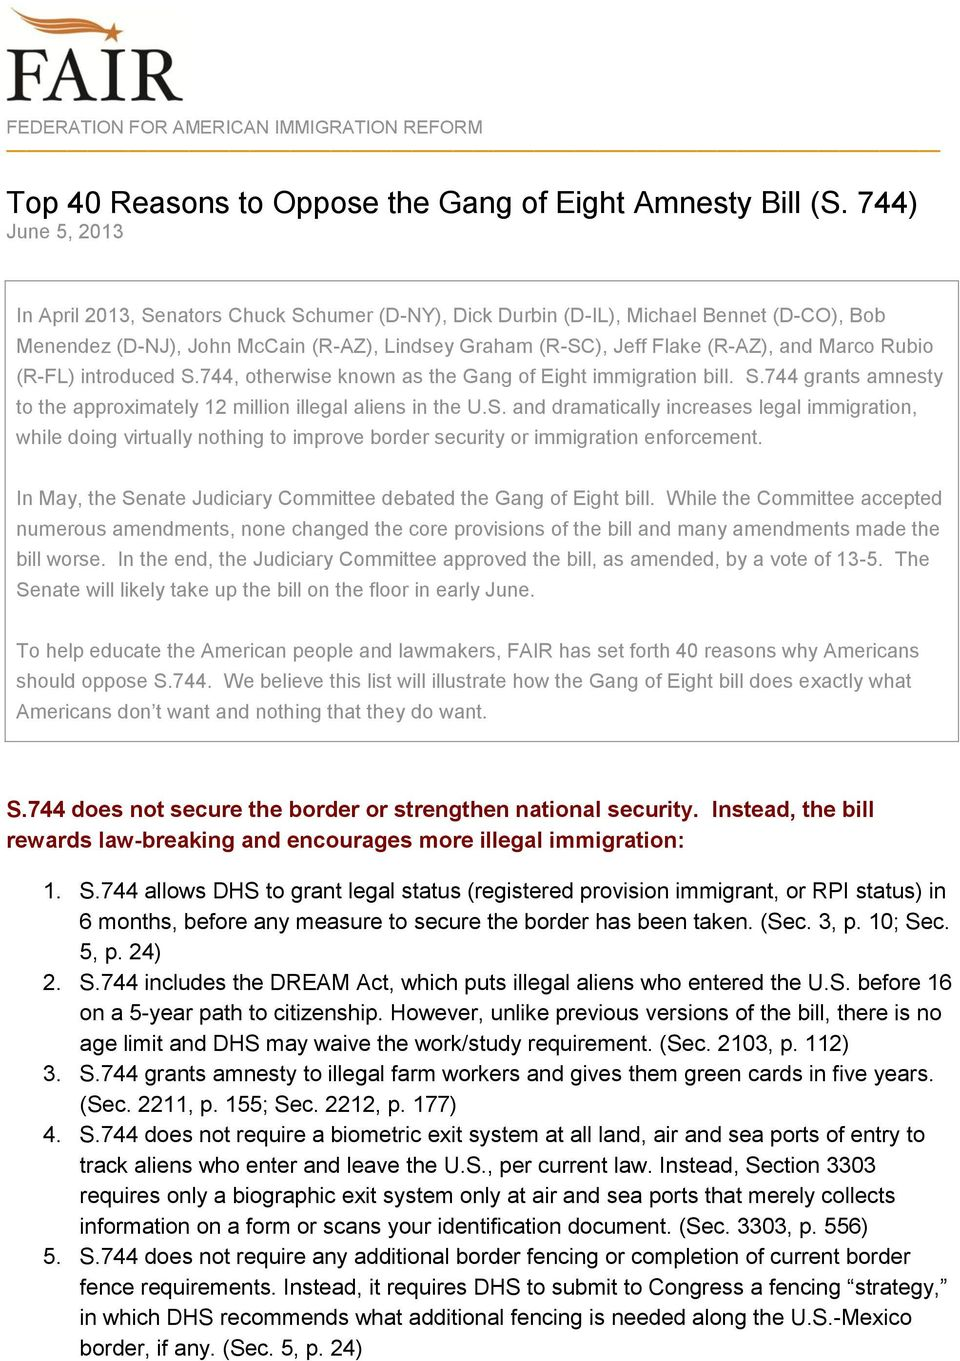 Rubio (R-FL) introduced S.744, otherwise known as the Gang of Eight immigration bill. S.744 grants amnesty to the approximately 12 million illegal aliens in the U.S. and dramatically increases legal immigration, while doing virtually nothing to improve border security or immigration enforcement.